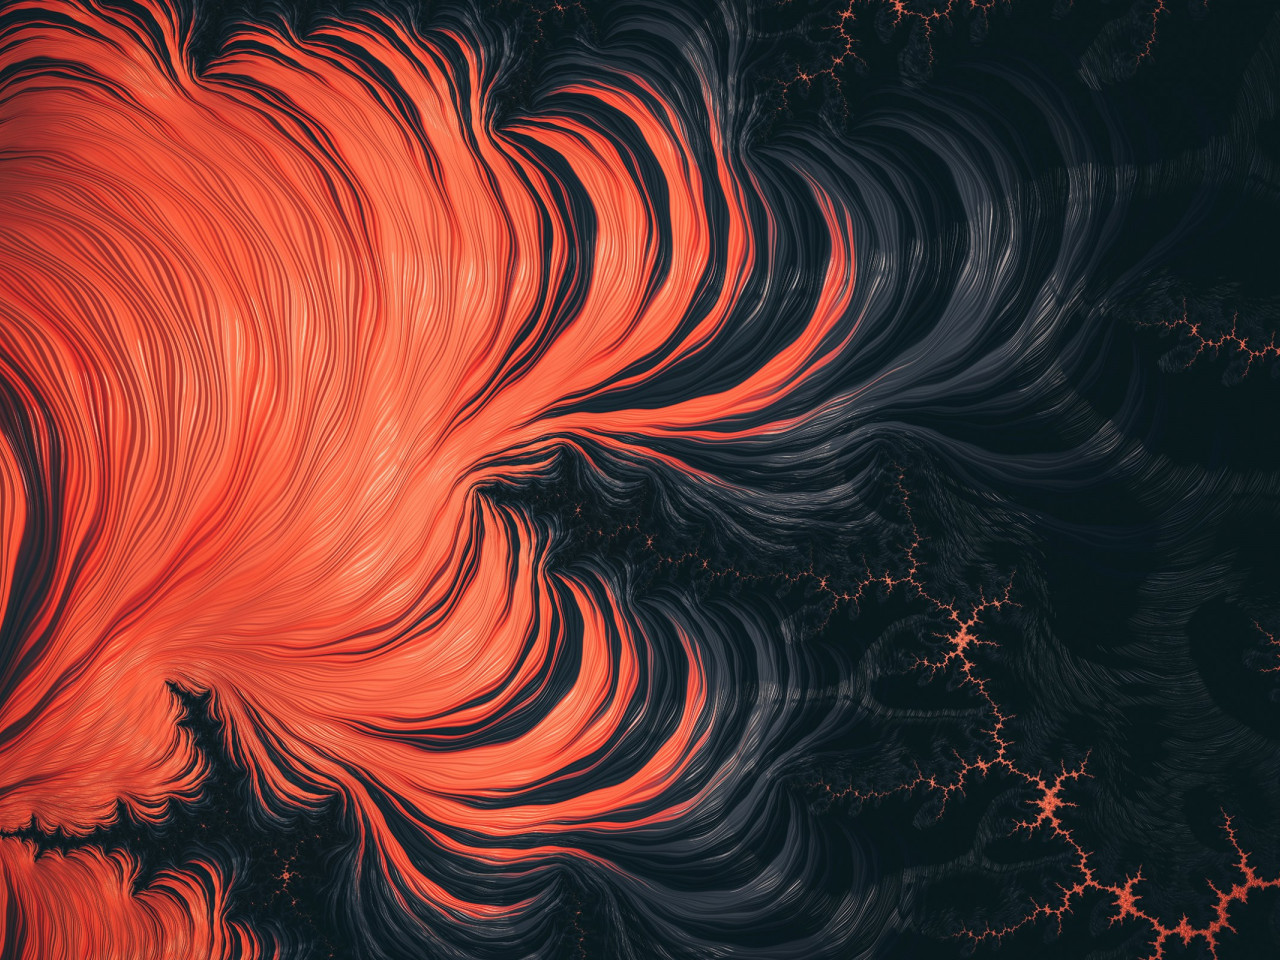 Fractal Art: Hyperventilation | 1280x960 wallpaper